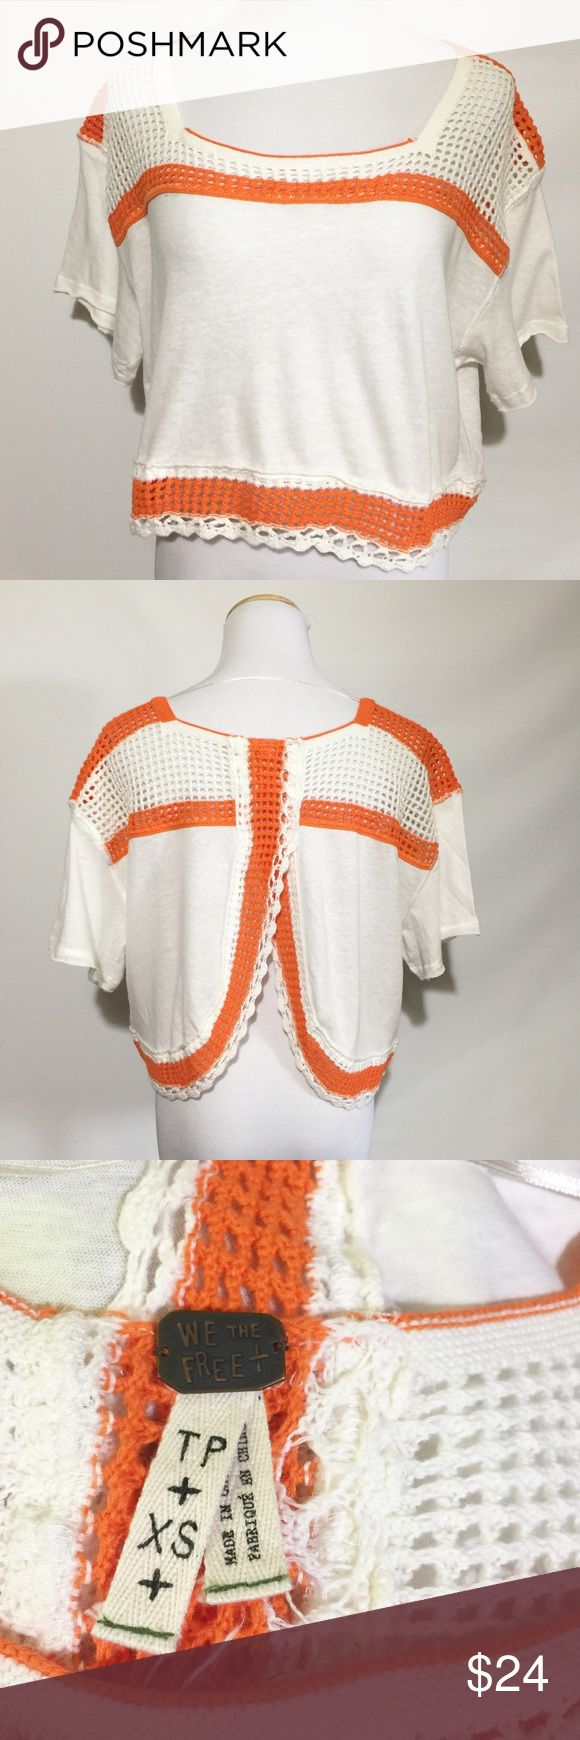 WE THE FREE CROP OPEN BACK TOP White with orange embroidered trim. GUC. Free People Tops Crop Tops